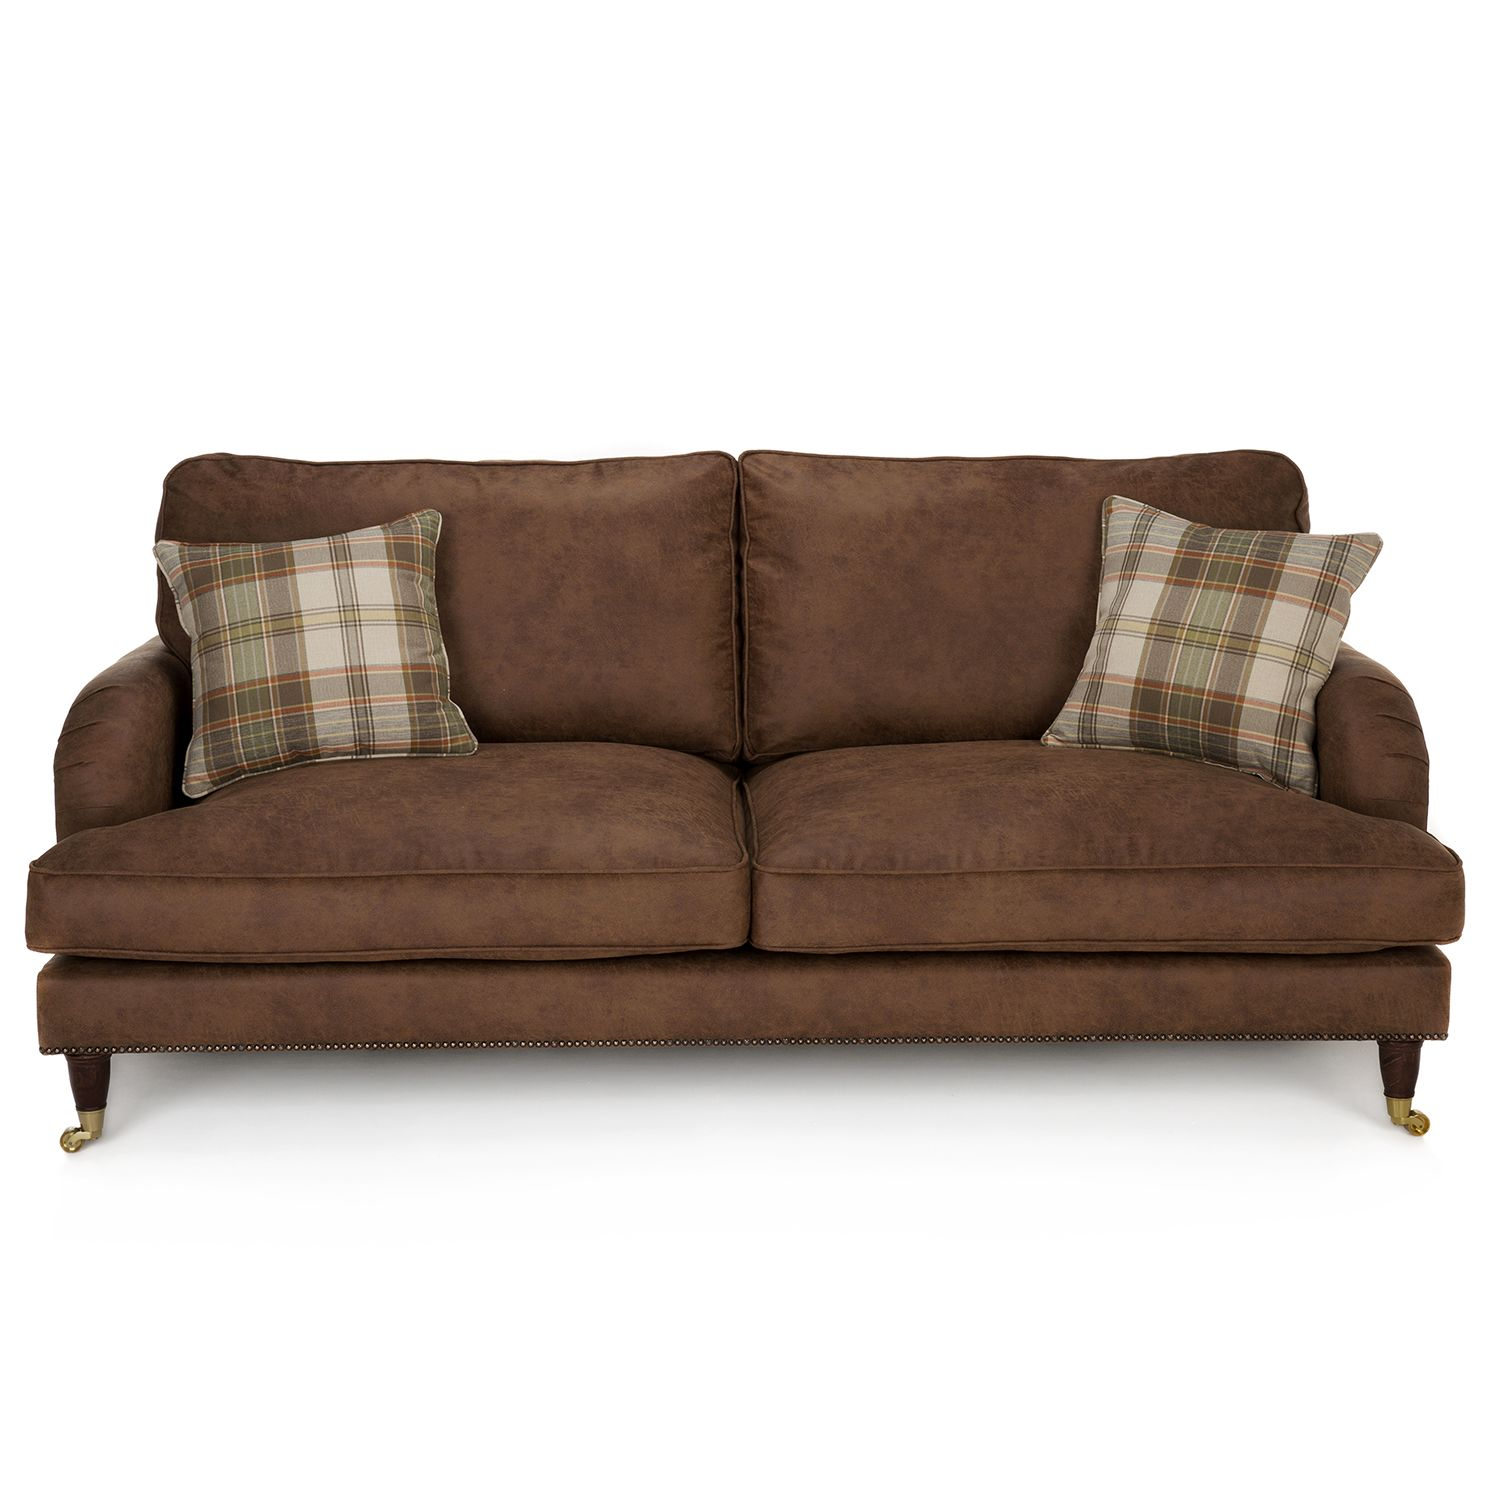 Clic Nevada 3 Seater Faux Leather Sofa Next Day Delivery